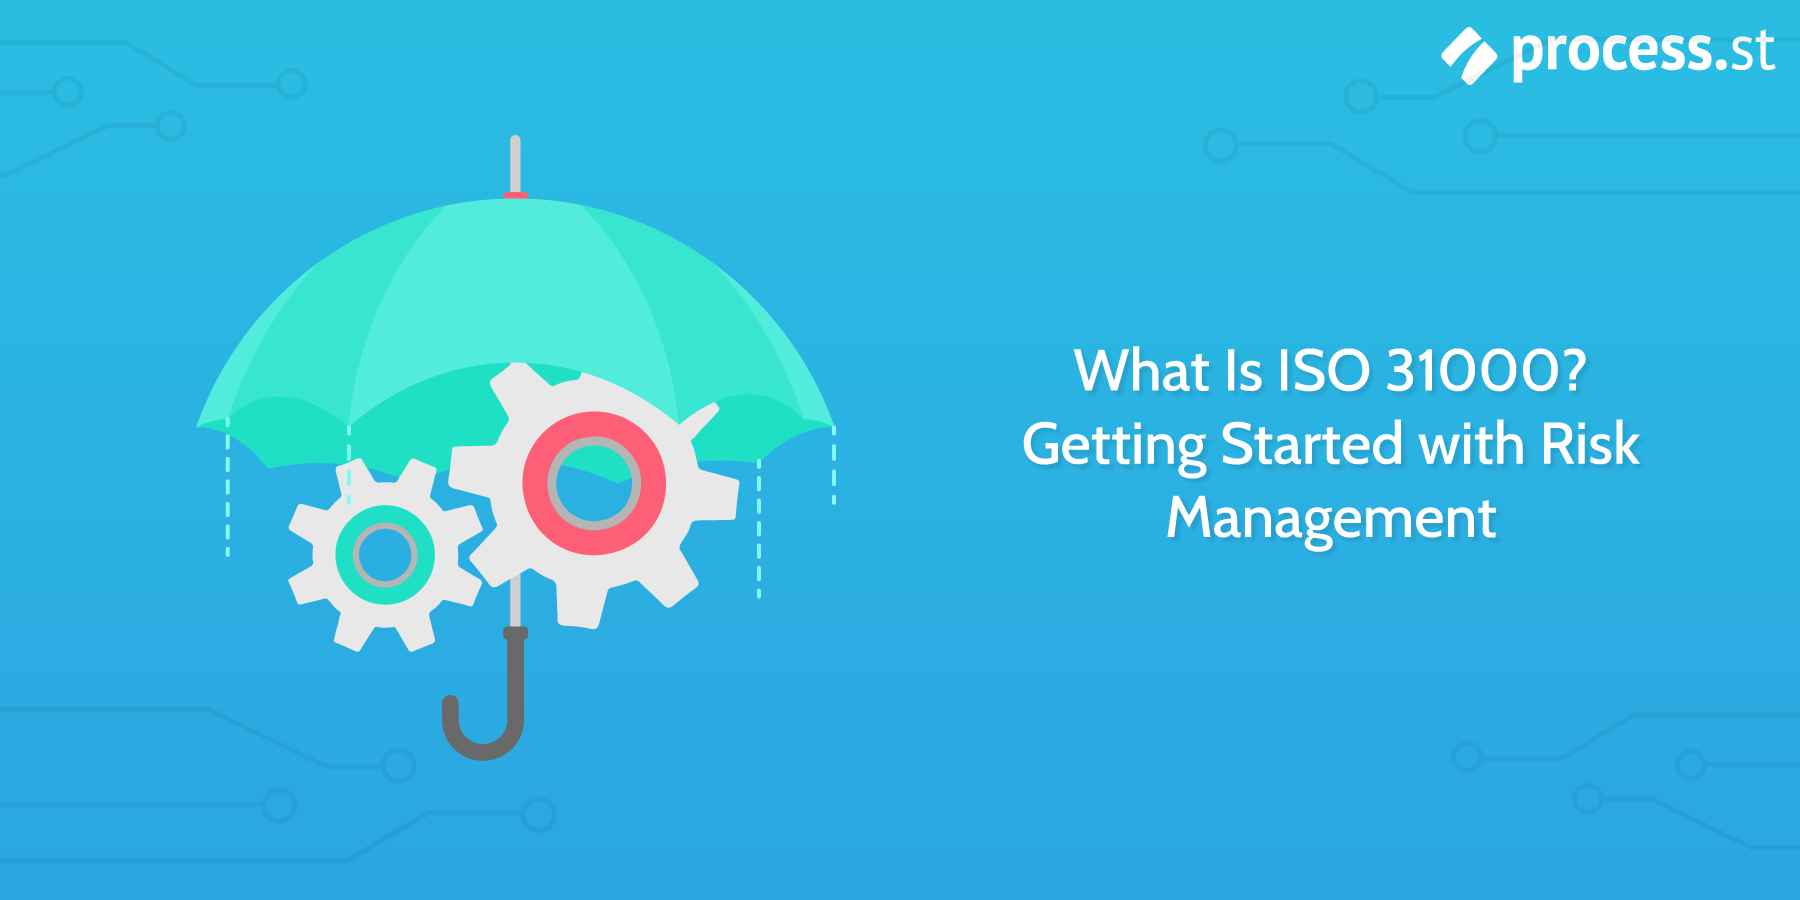 what is iso 31000? Getting started with risk management